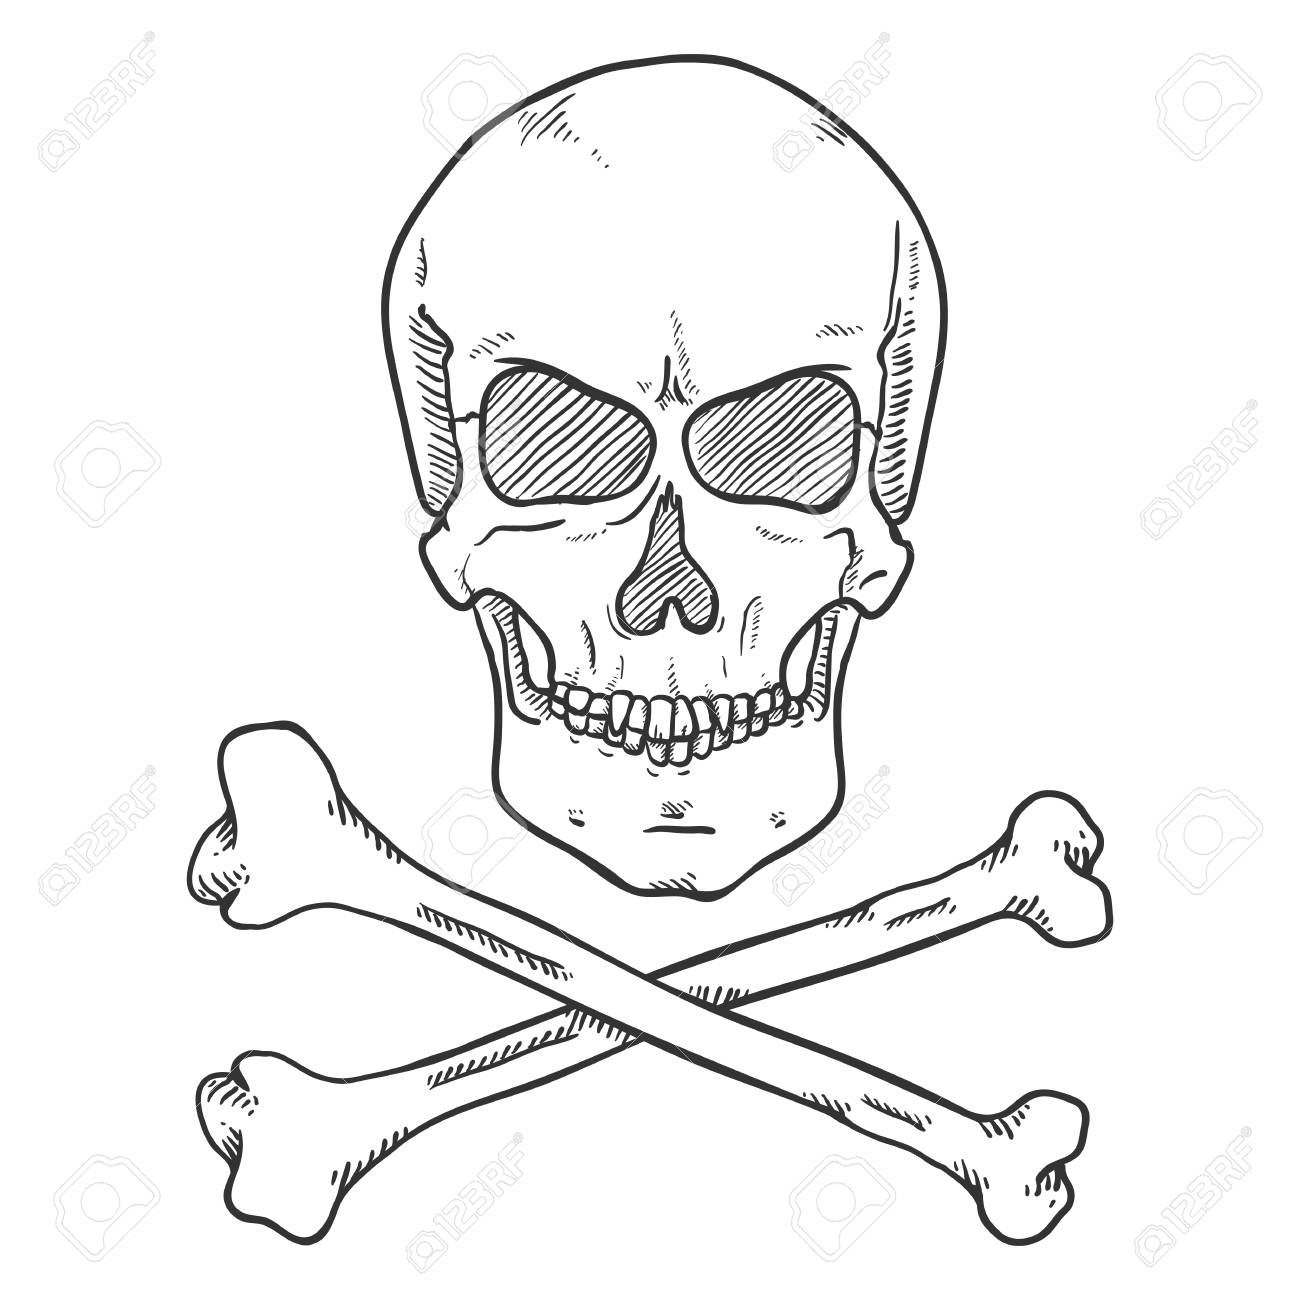 Vector Sketch Pirate Symbol Human Skull With Cross Bones Royalty Free Cliparts Vectors And Stock Illustration Image 111968087